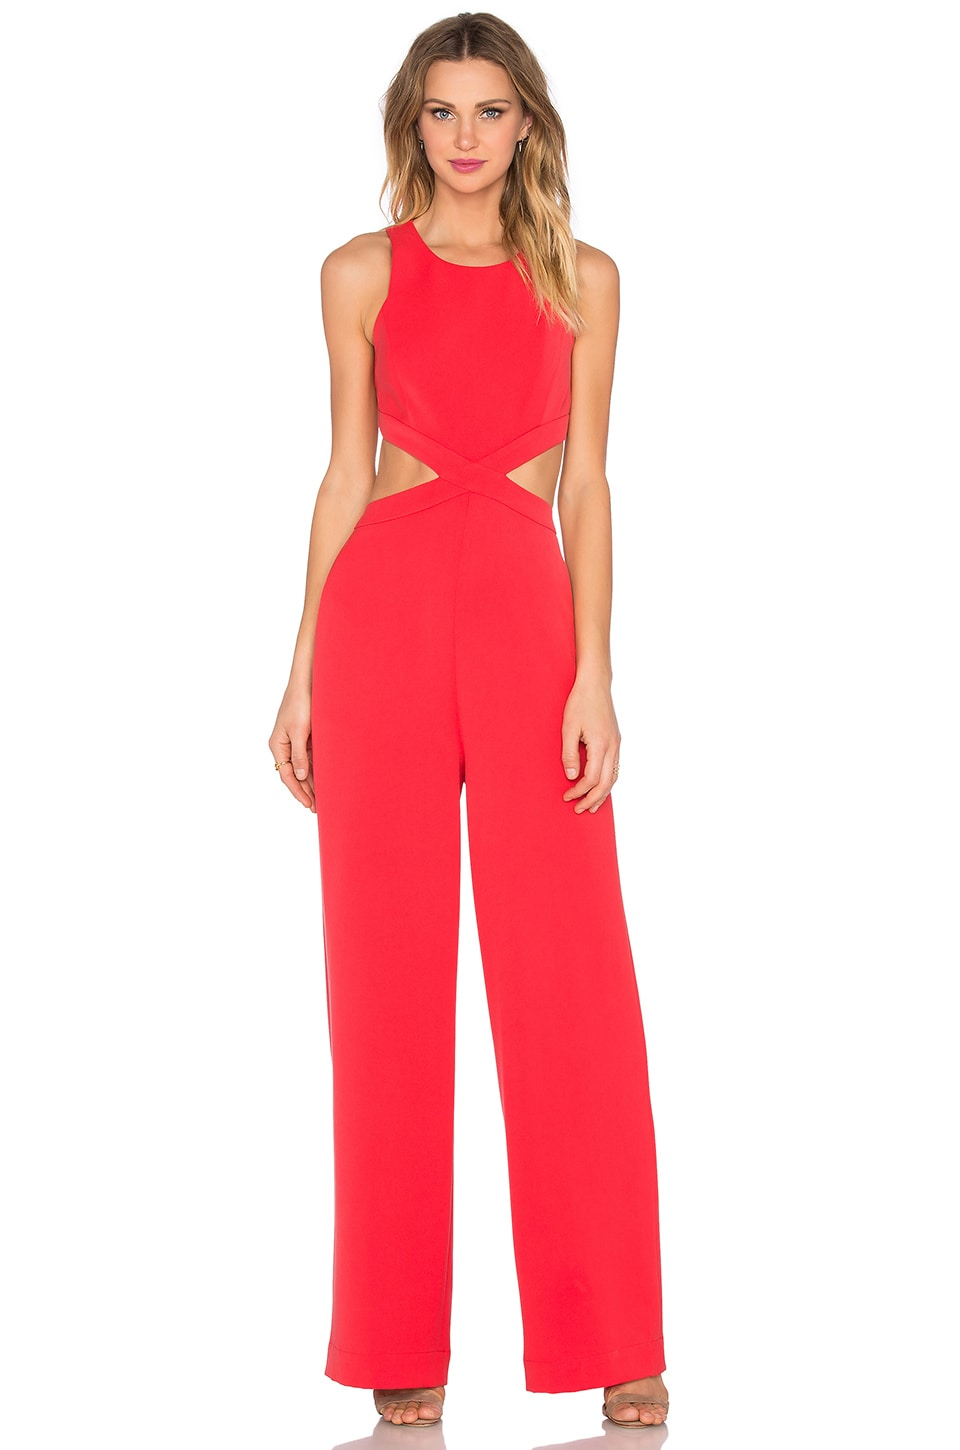 BCBGMAXAZRIA Emjay Jumpsuit in Red Berry